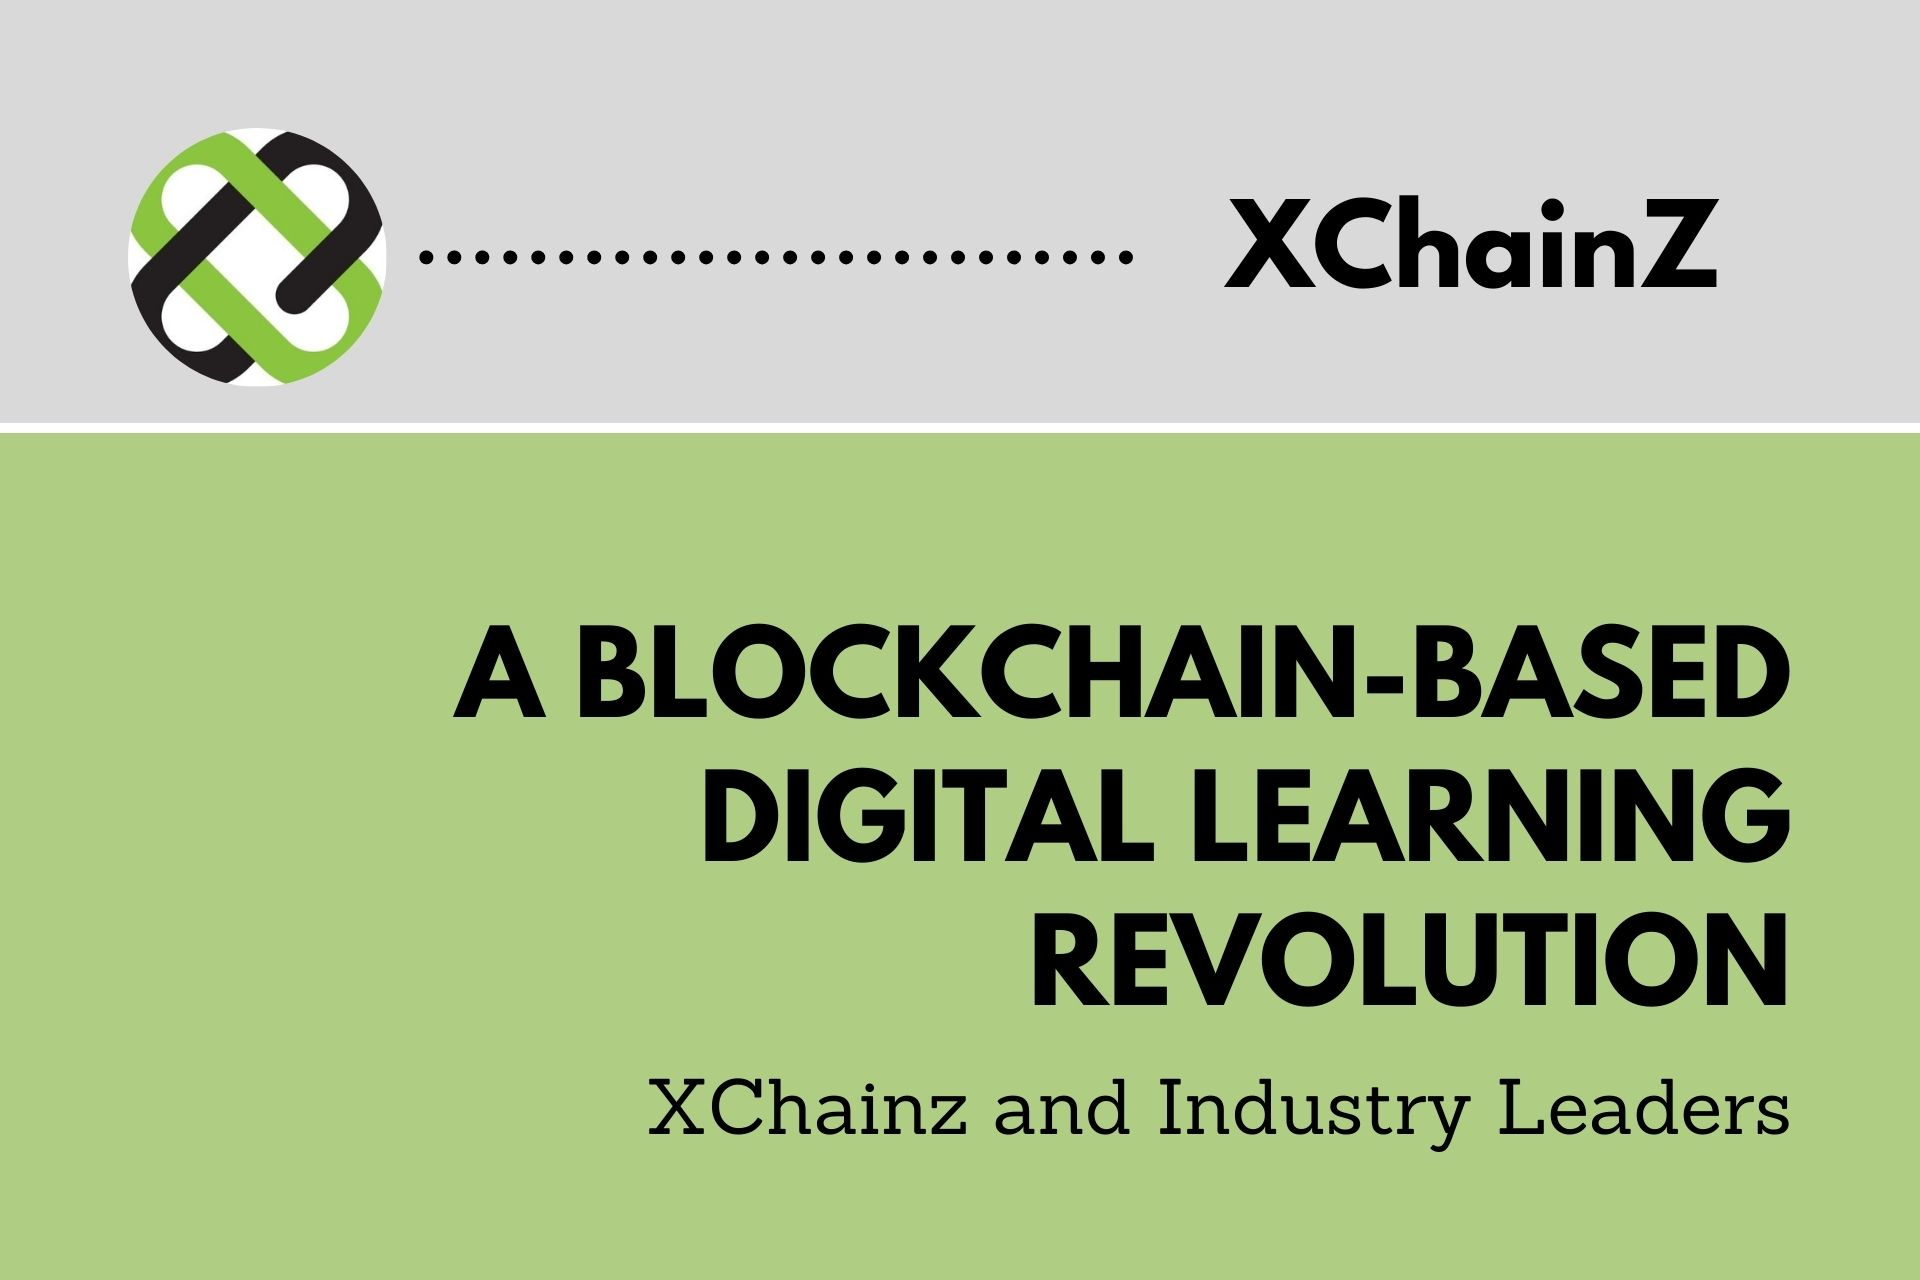 XChainz and Industry Leaders Are Driving a Blockchain-Based Digital Learning Revolution